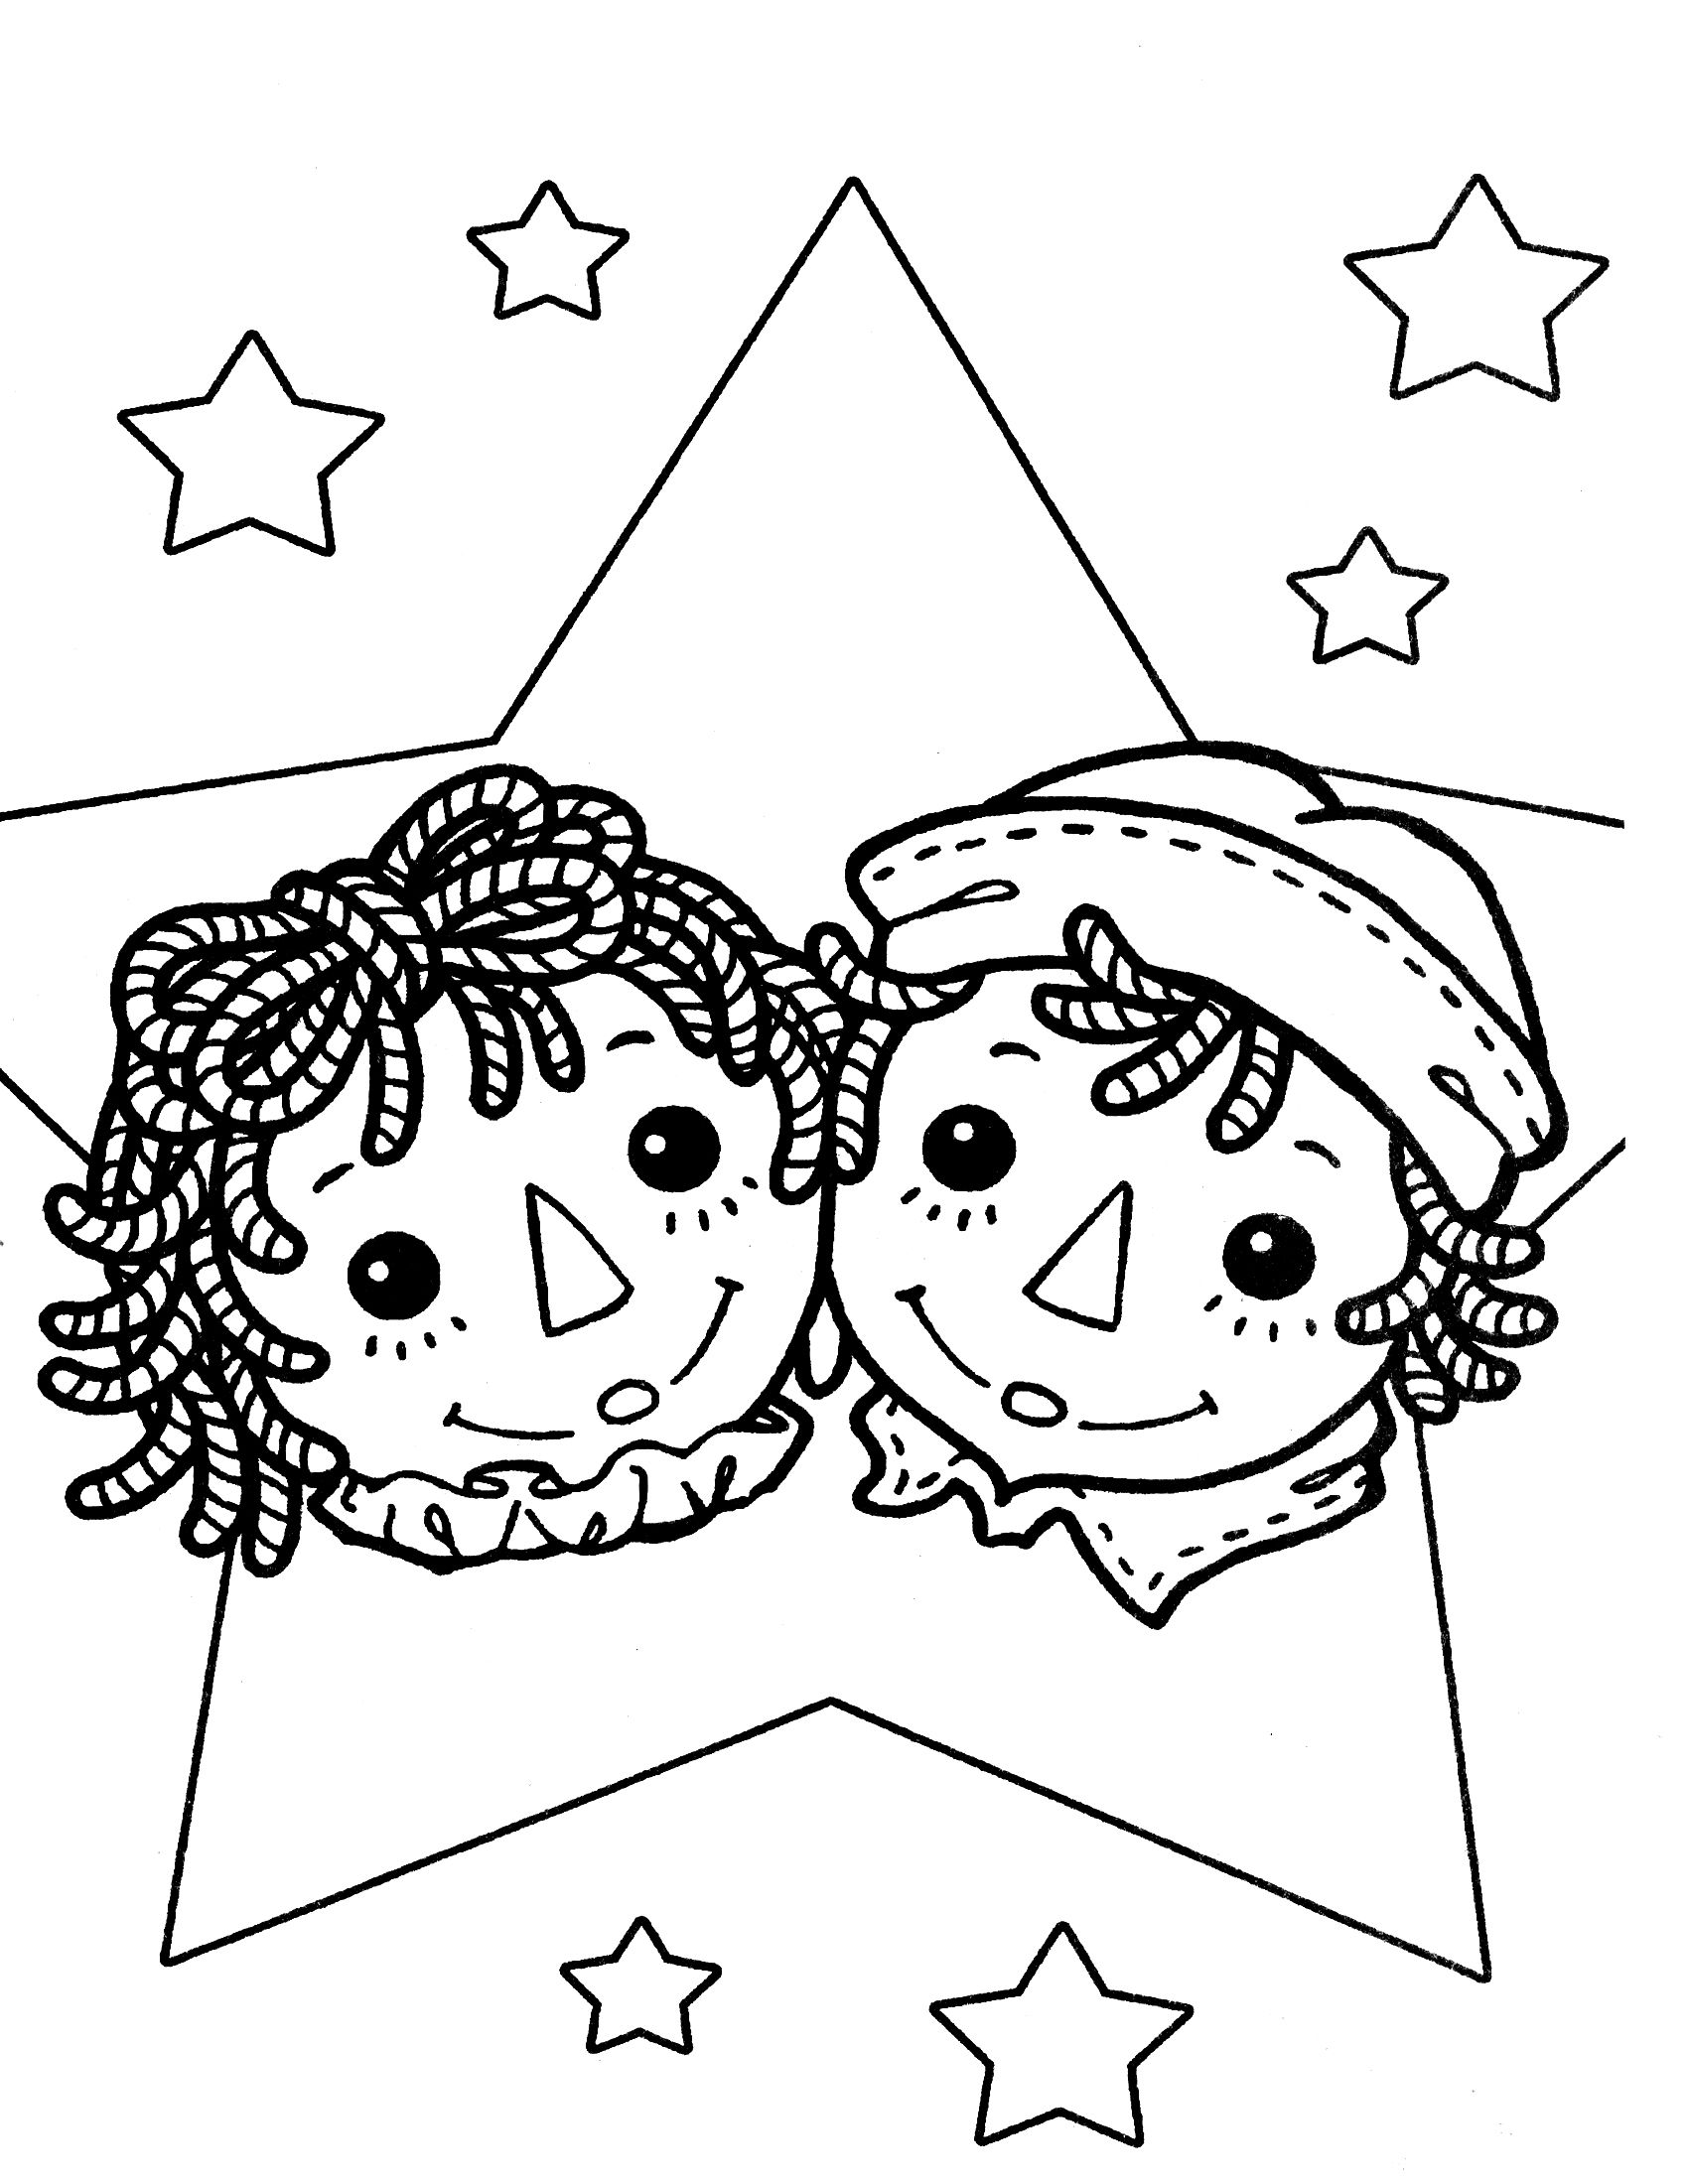 Raggedy ann coloring pages raggedy ann andy coloring for Raggedy ann and andy coloring pages